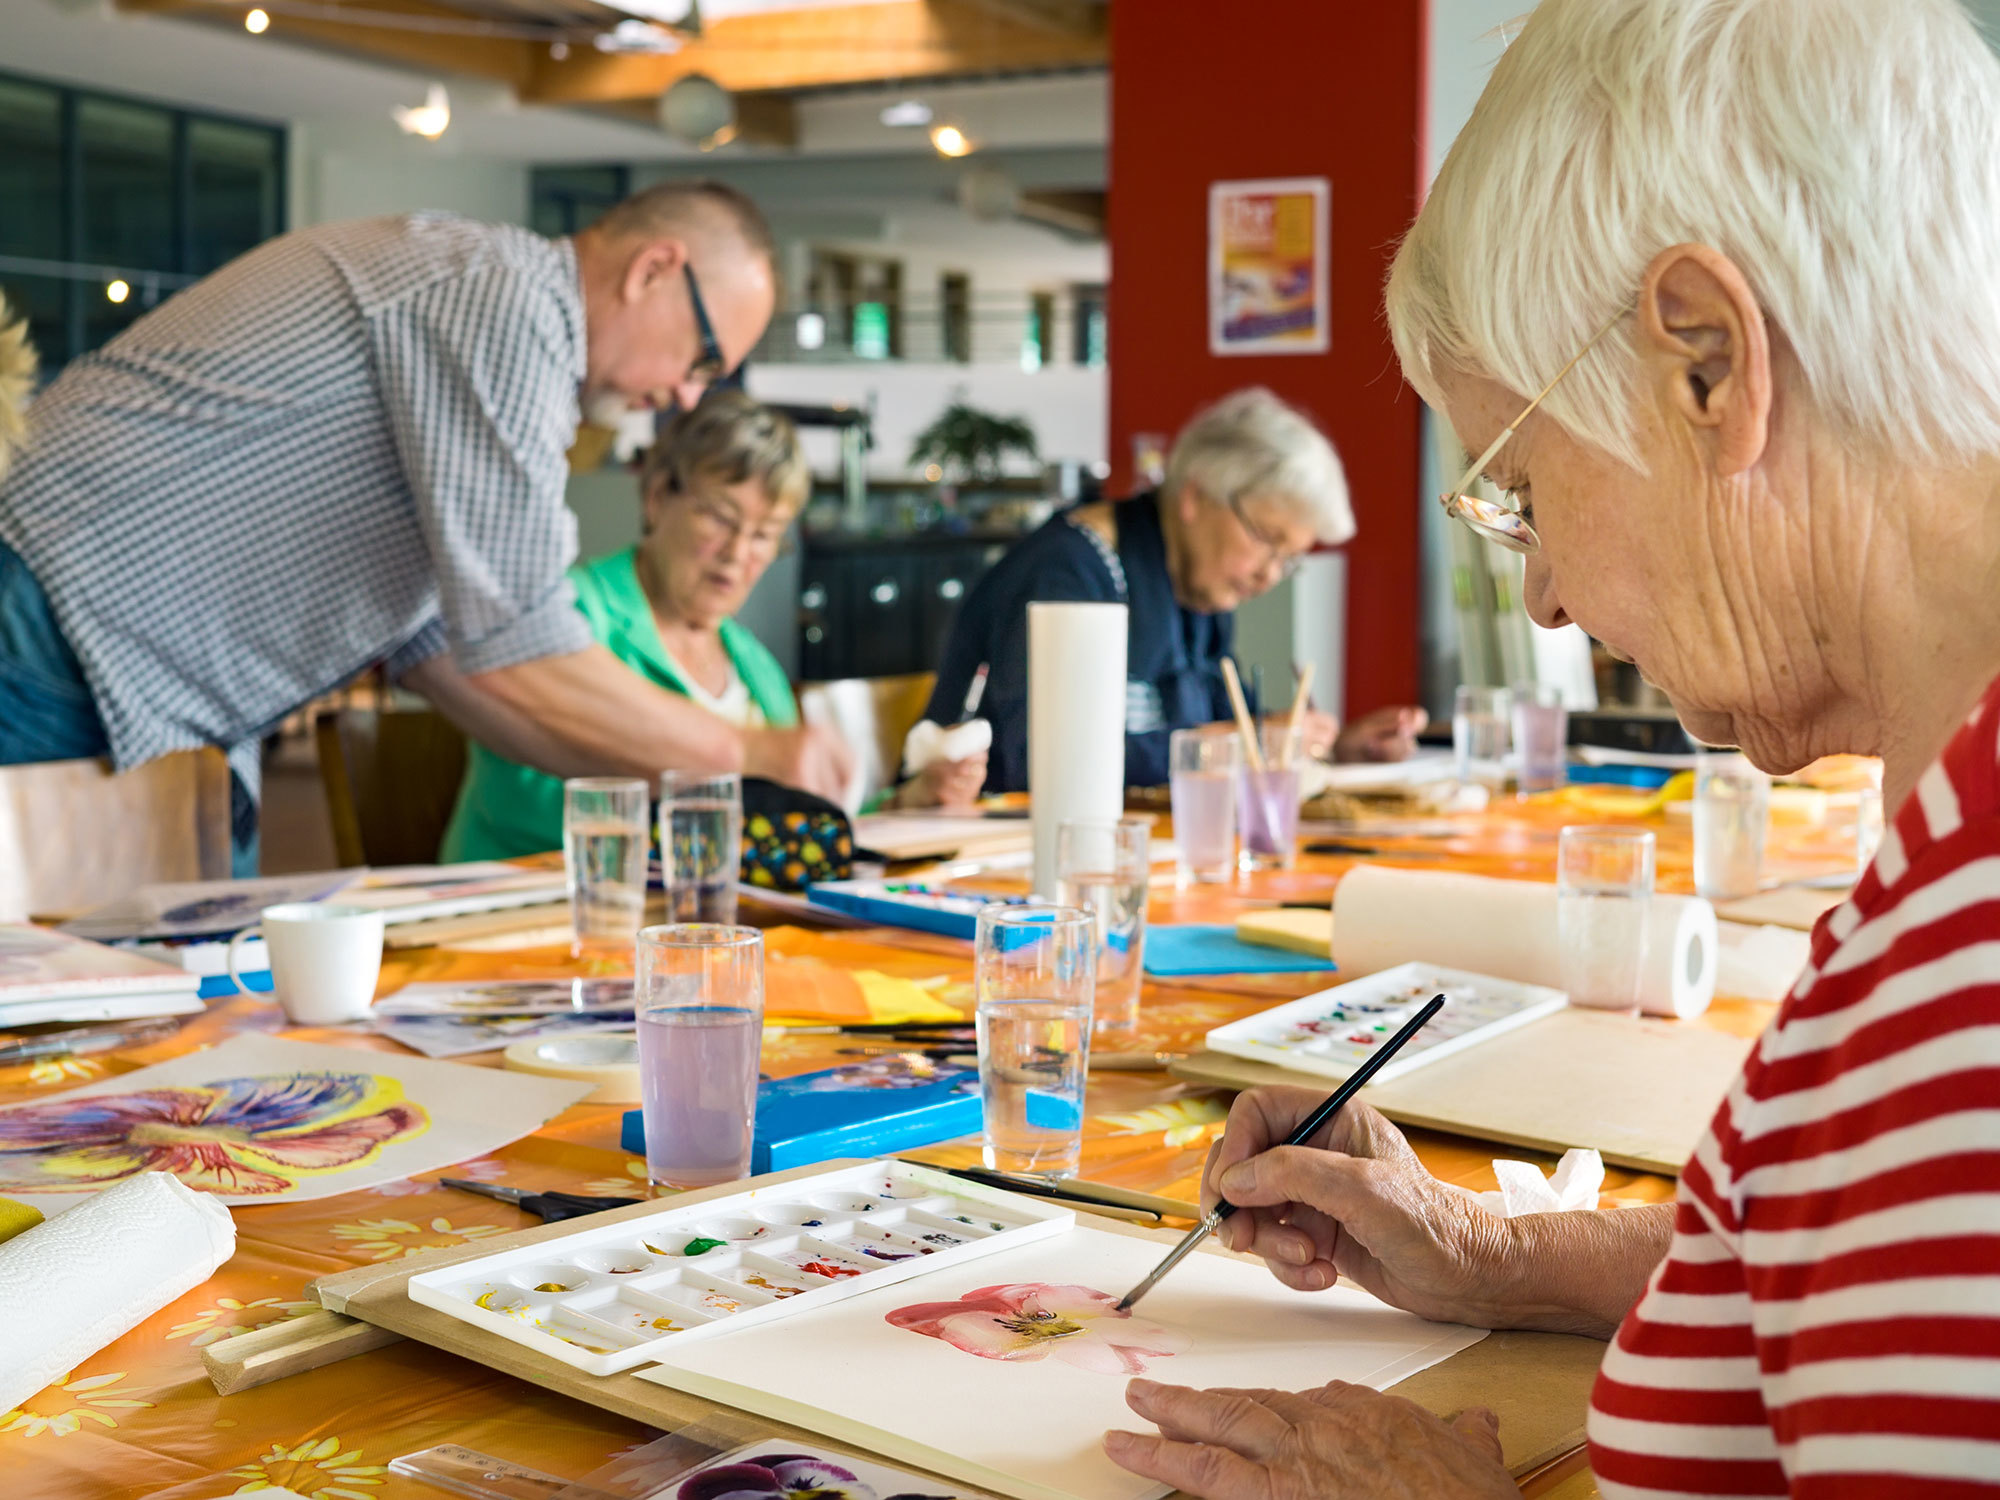 Older people undertaking Centre Based Care activities.